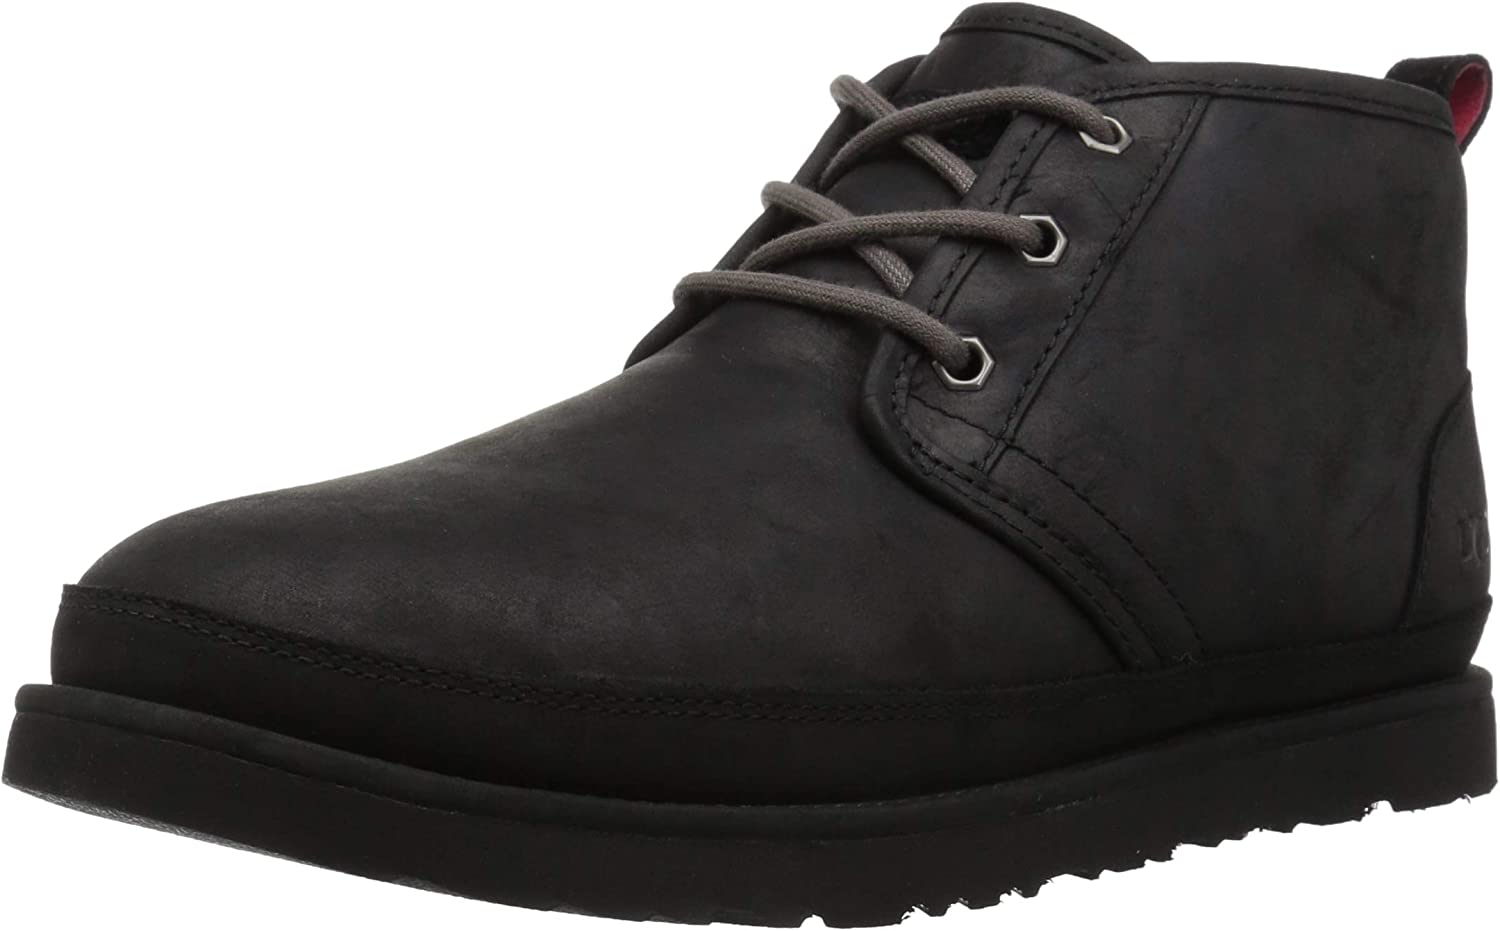 TALLA 43 EU. UGG - NEUMEL WATERPROOF - grizzly